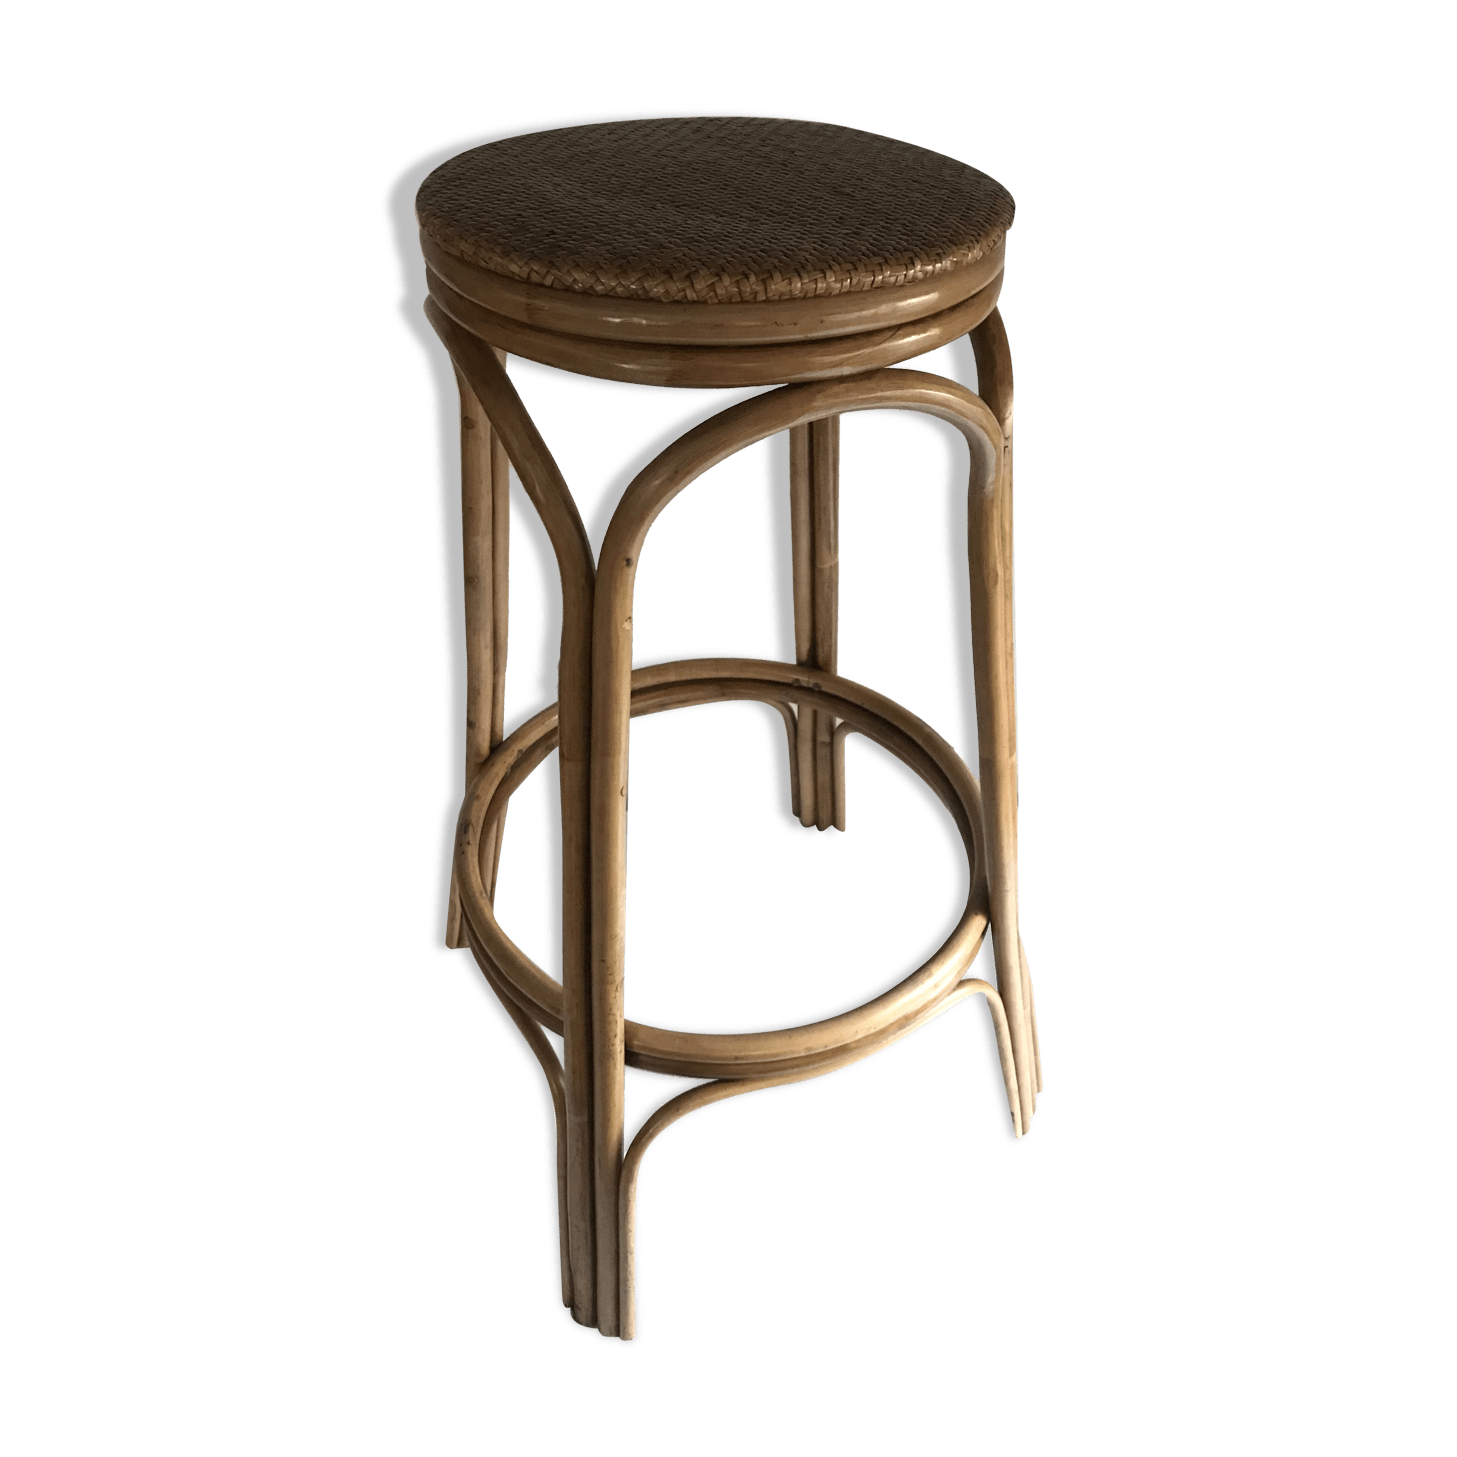 Songmics Lot De 2 Tabourets De Bar Stool Tabouret De Bar Haut Finest Tabouret De Bar En Mtal